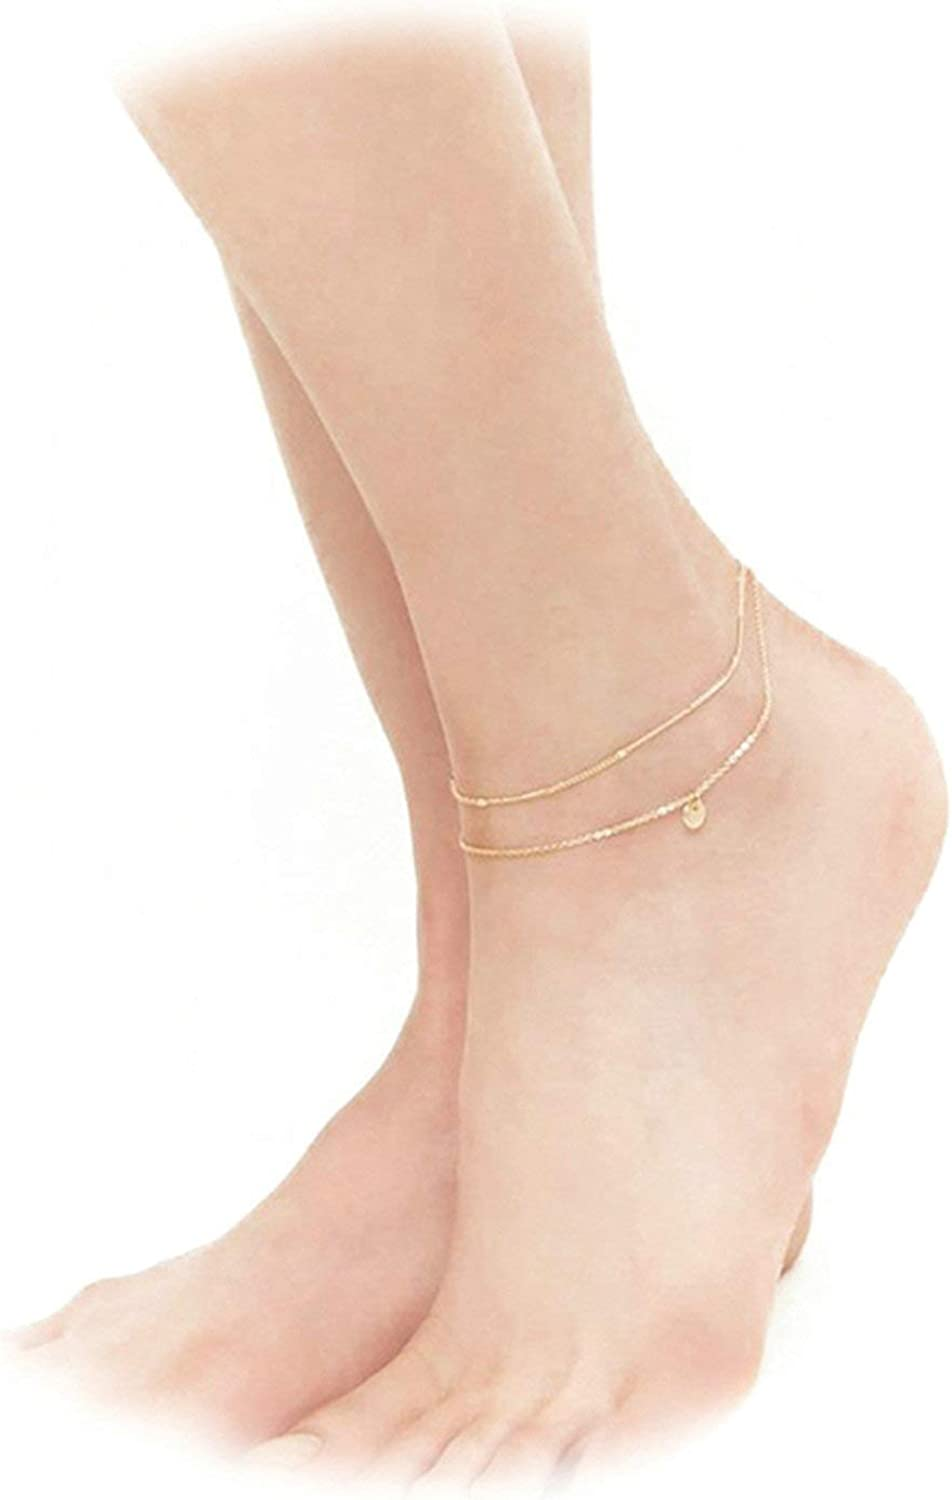 KnSam Charm Anklets for Women Girls Gold Alloy Double Layered Round Indian Anklet